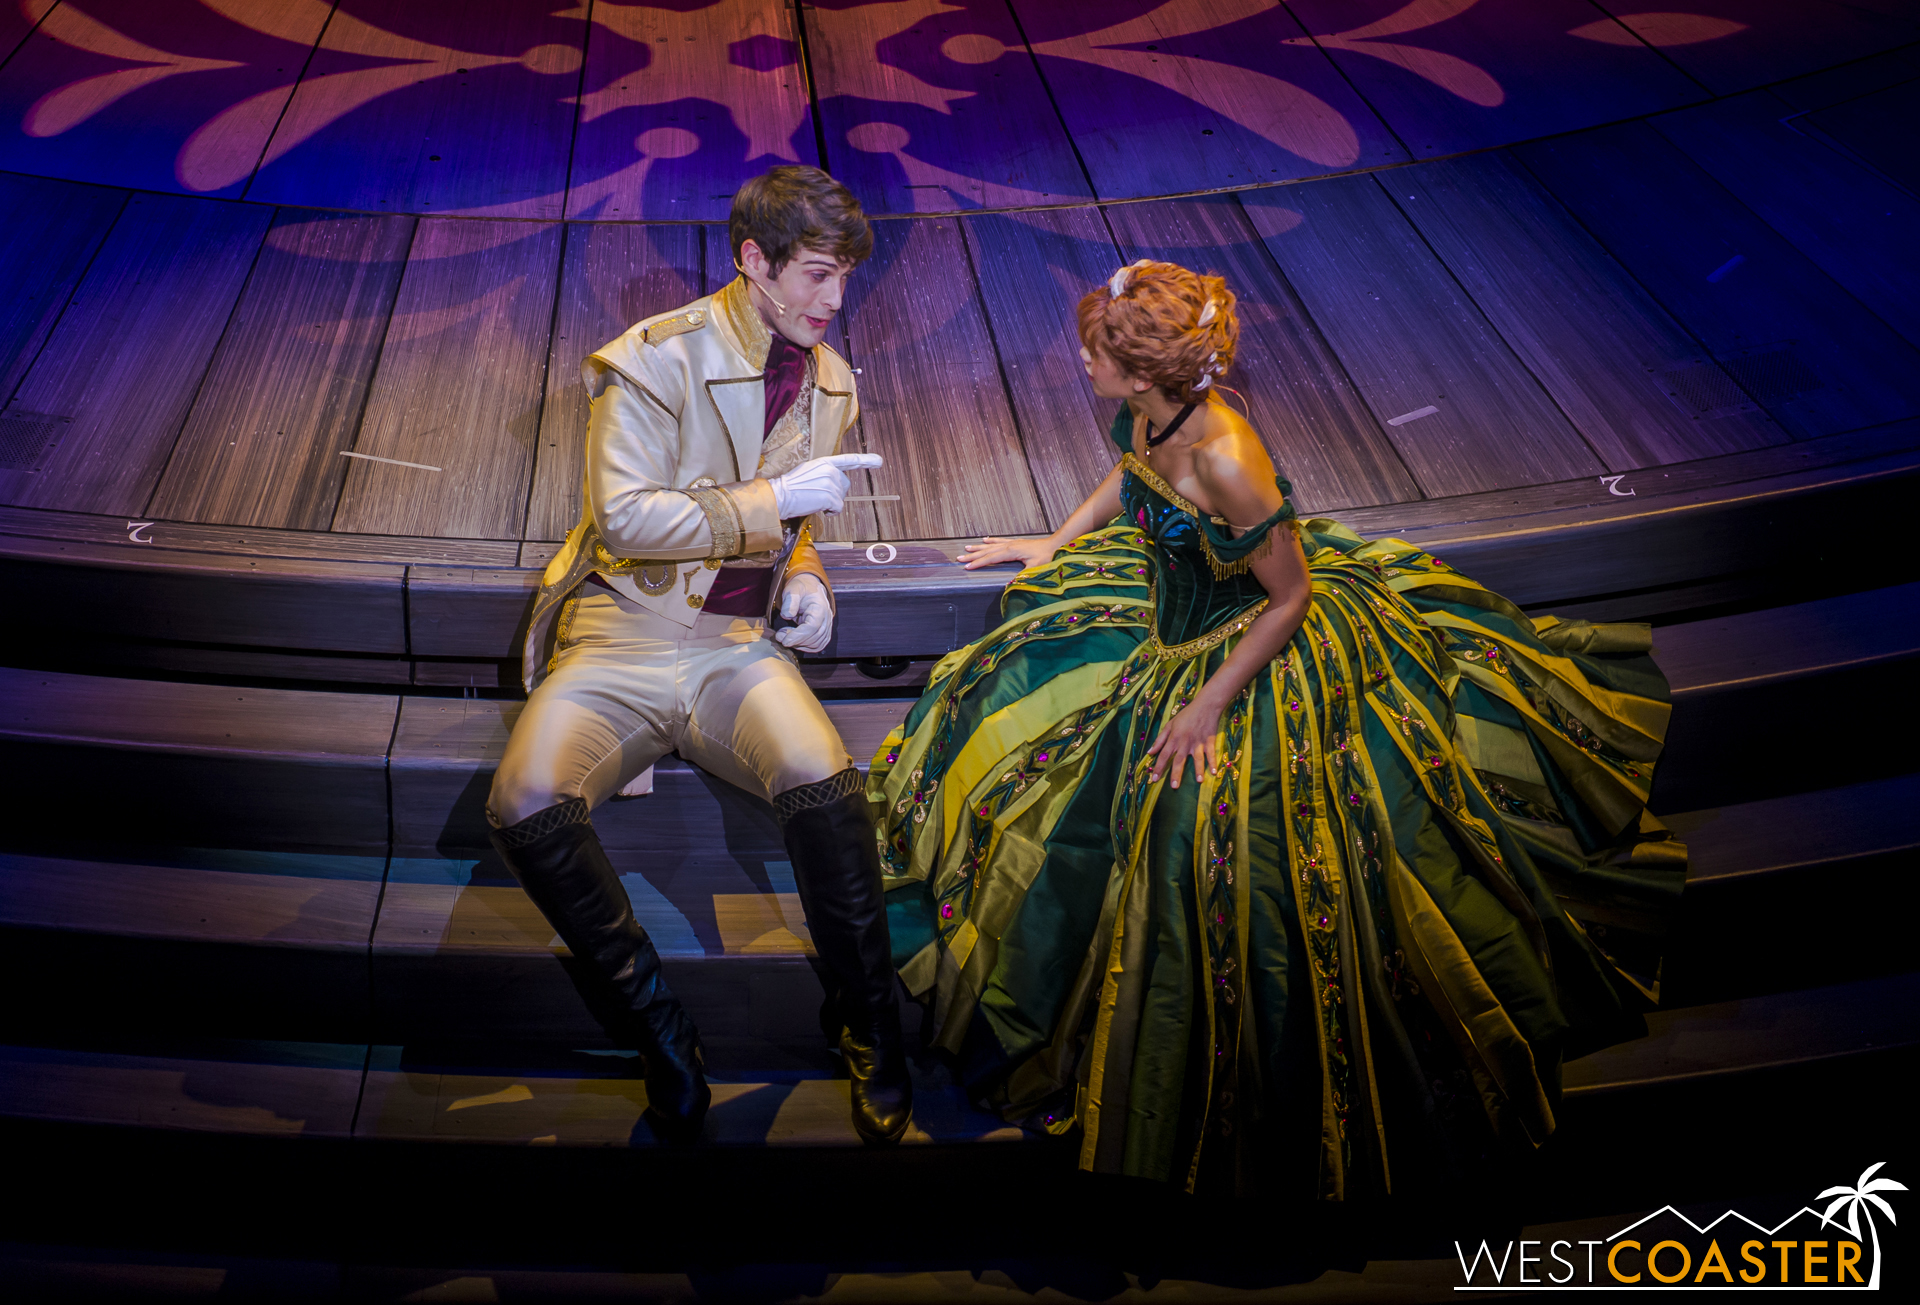 While Elsa isn't looking, Hans and Anna quietly discuss contingency plans in case the great dance does not sway Elsa.